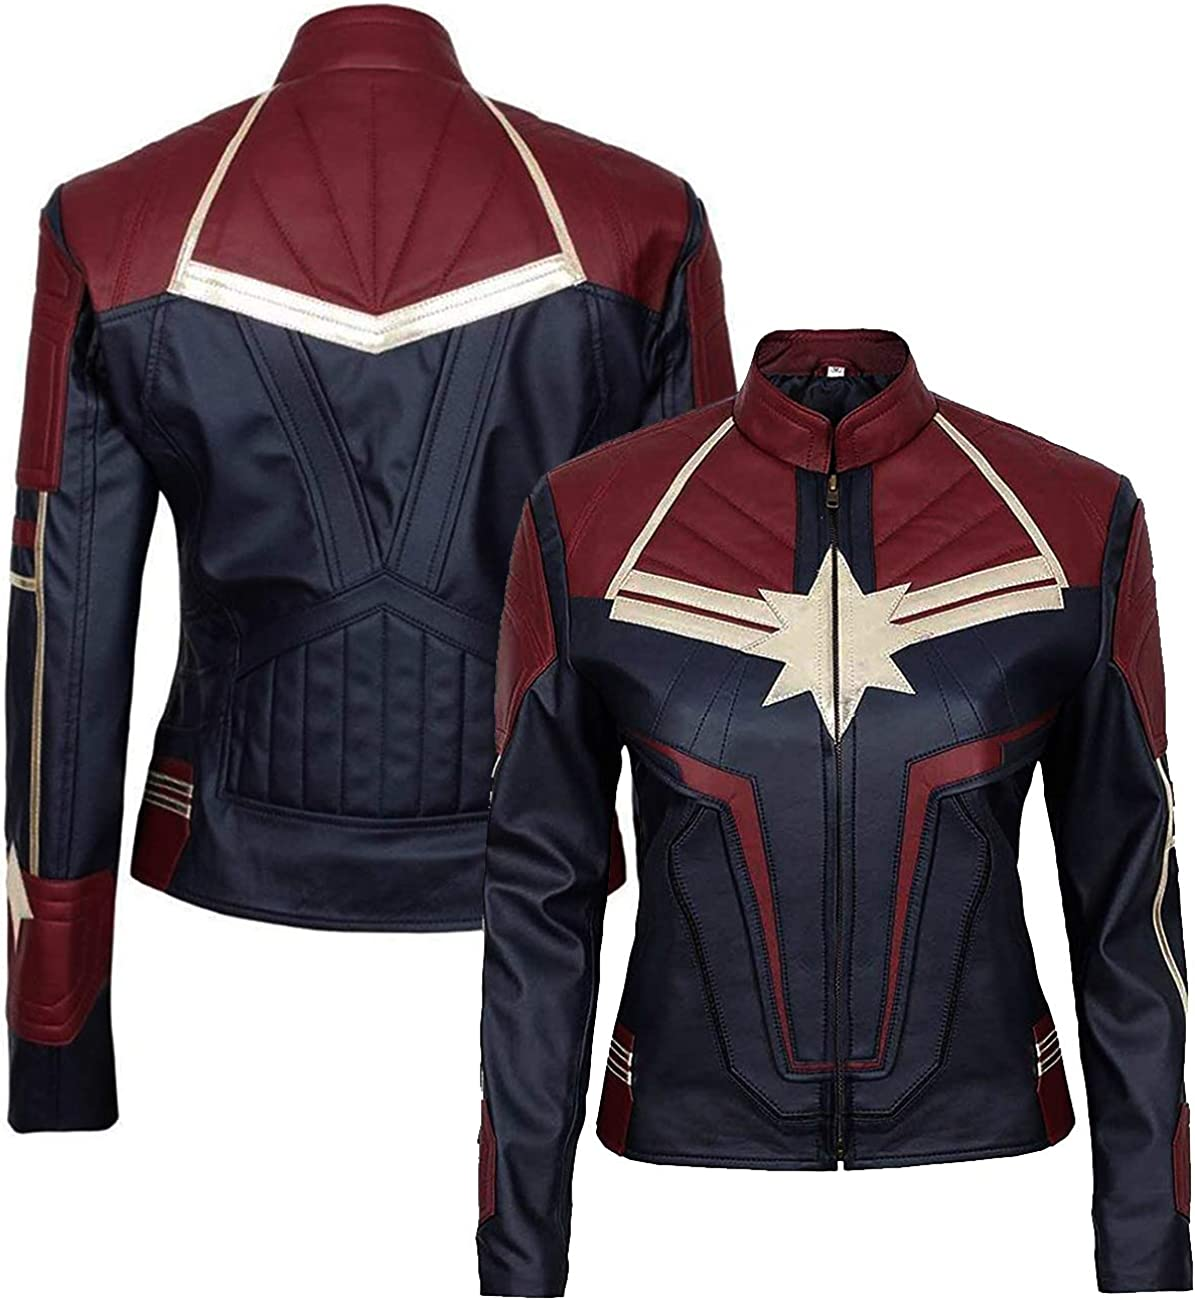 Amazon Com Girls Captain Brie Larson Slim Fit Superhero Vegan Leather Short Body Cosplay Halloween Costume Jacket Clothing Costumes marvel cosplay marvel captain marvel costume superhero cosplay epic cosplay cute cosplay amazing cosplay cosplay outfits cosplay shop this amazing brie larson captain marvel flight bomber jacket is such an amazing jacket so hurry up and get this captain marvel jacket… body cosplay halloween costume jacket